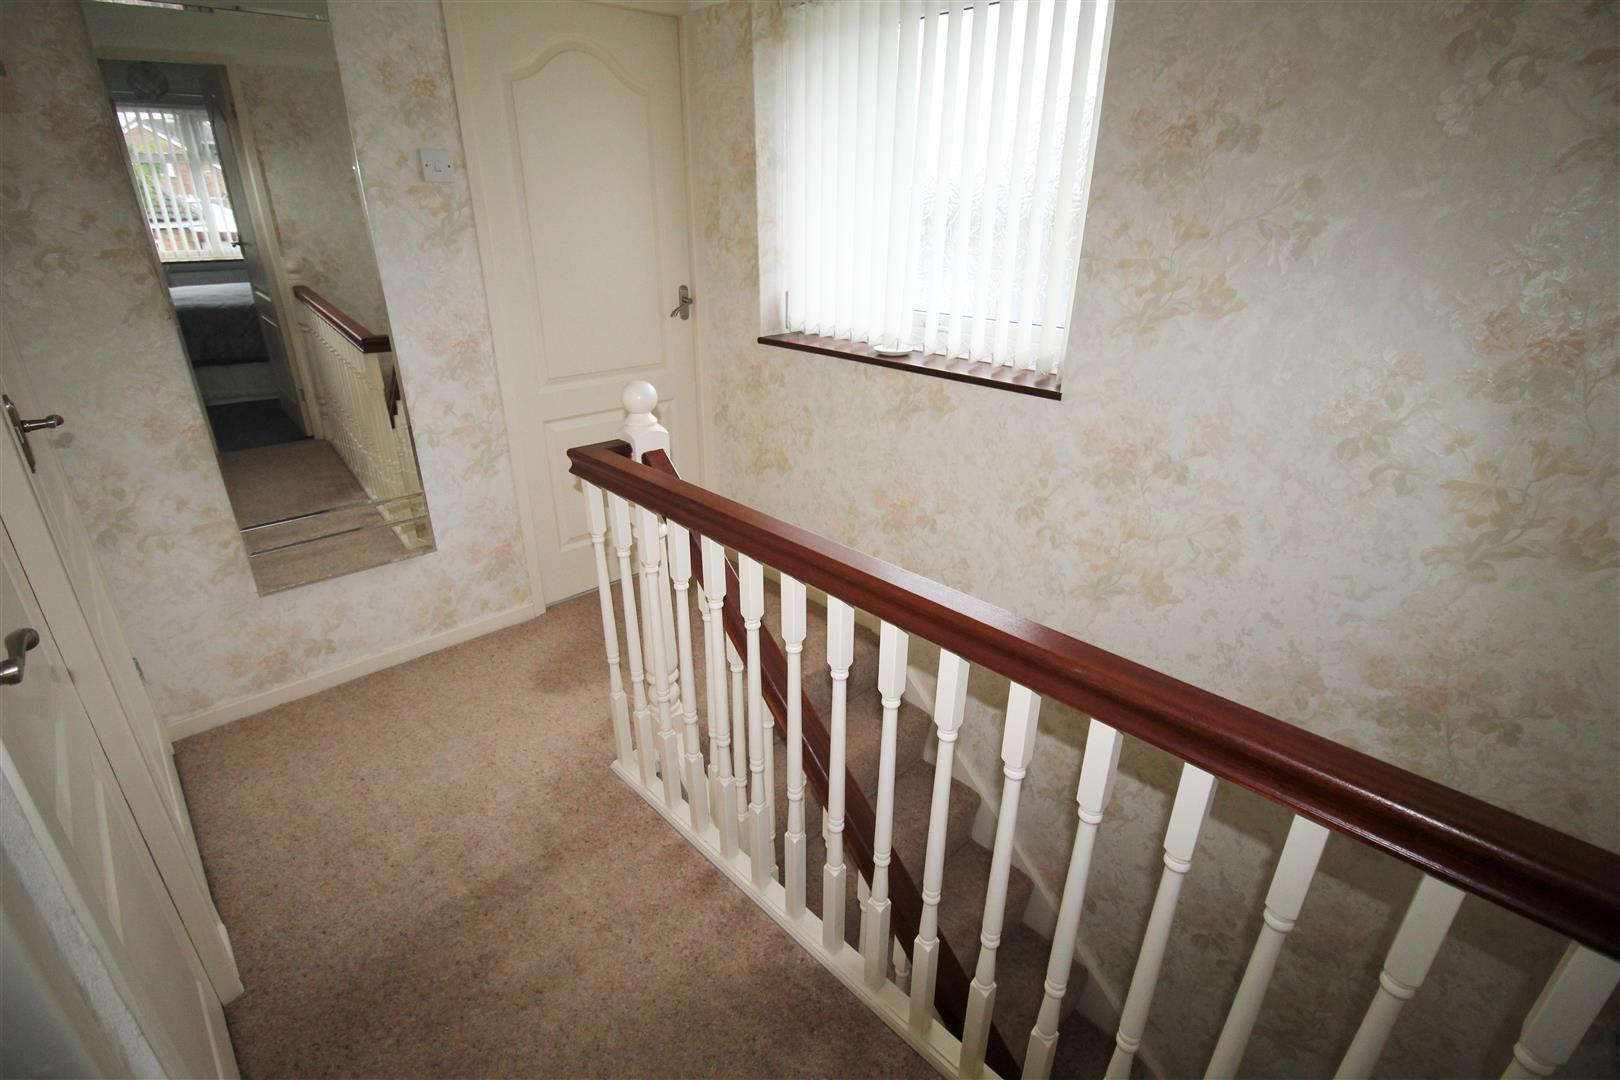 3 Bedrooms, House - Semi-Detached, Taunton Drive, Aintree